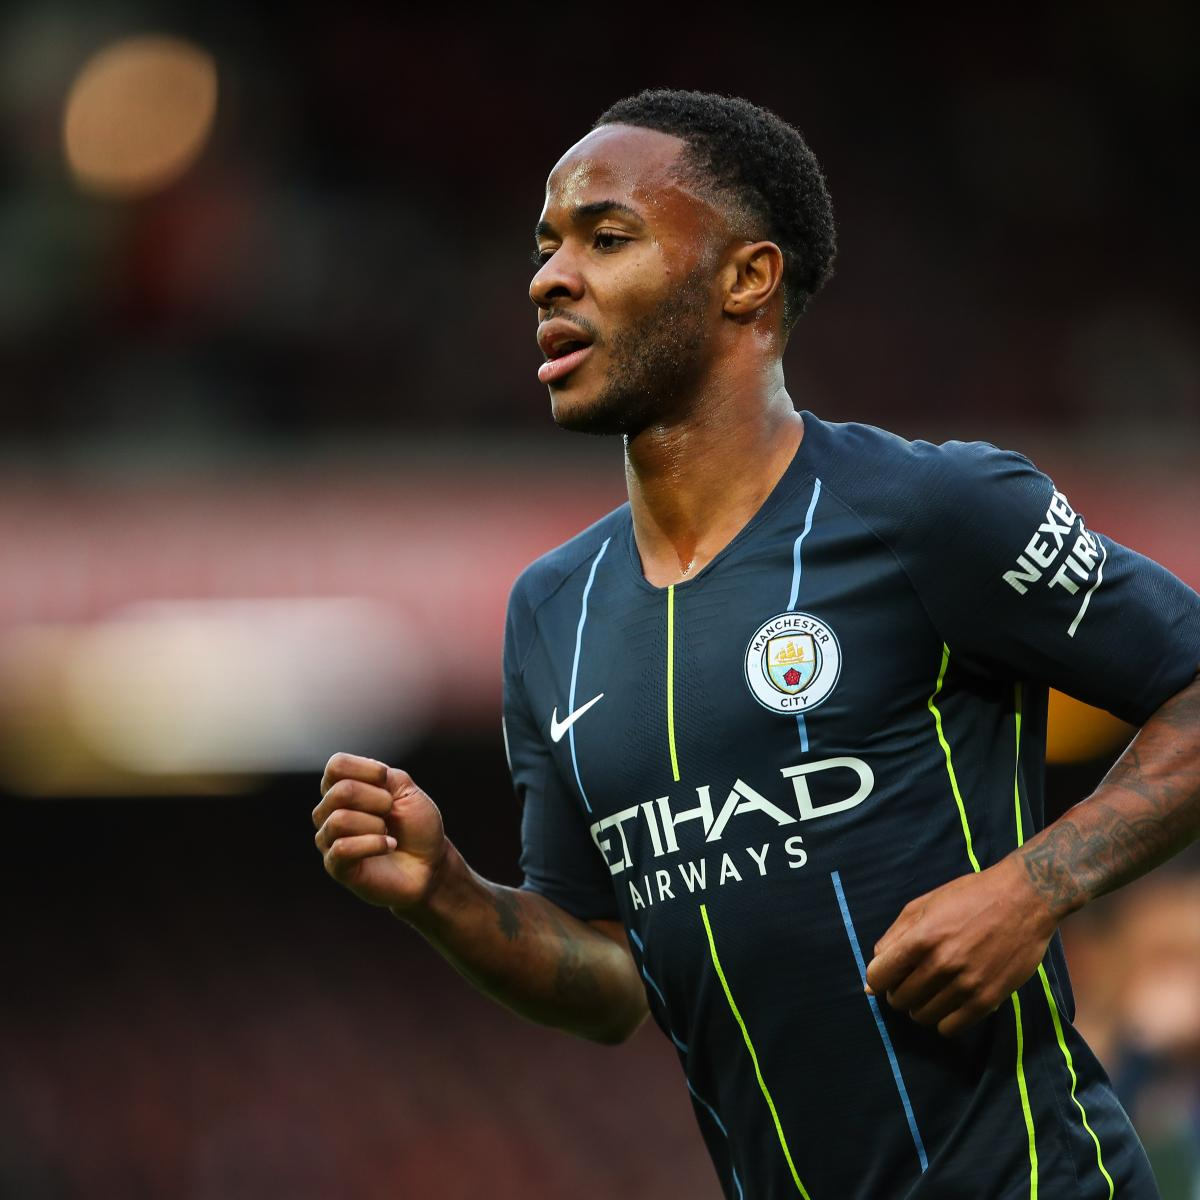 Report: Raheem Sterling, Manchester City Verbally Agree to 5-Year Contract